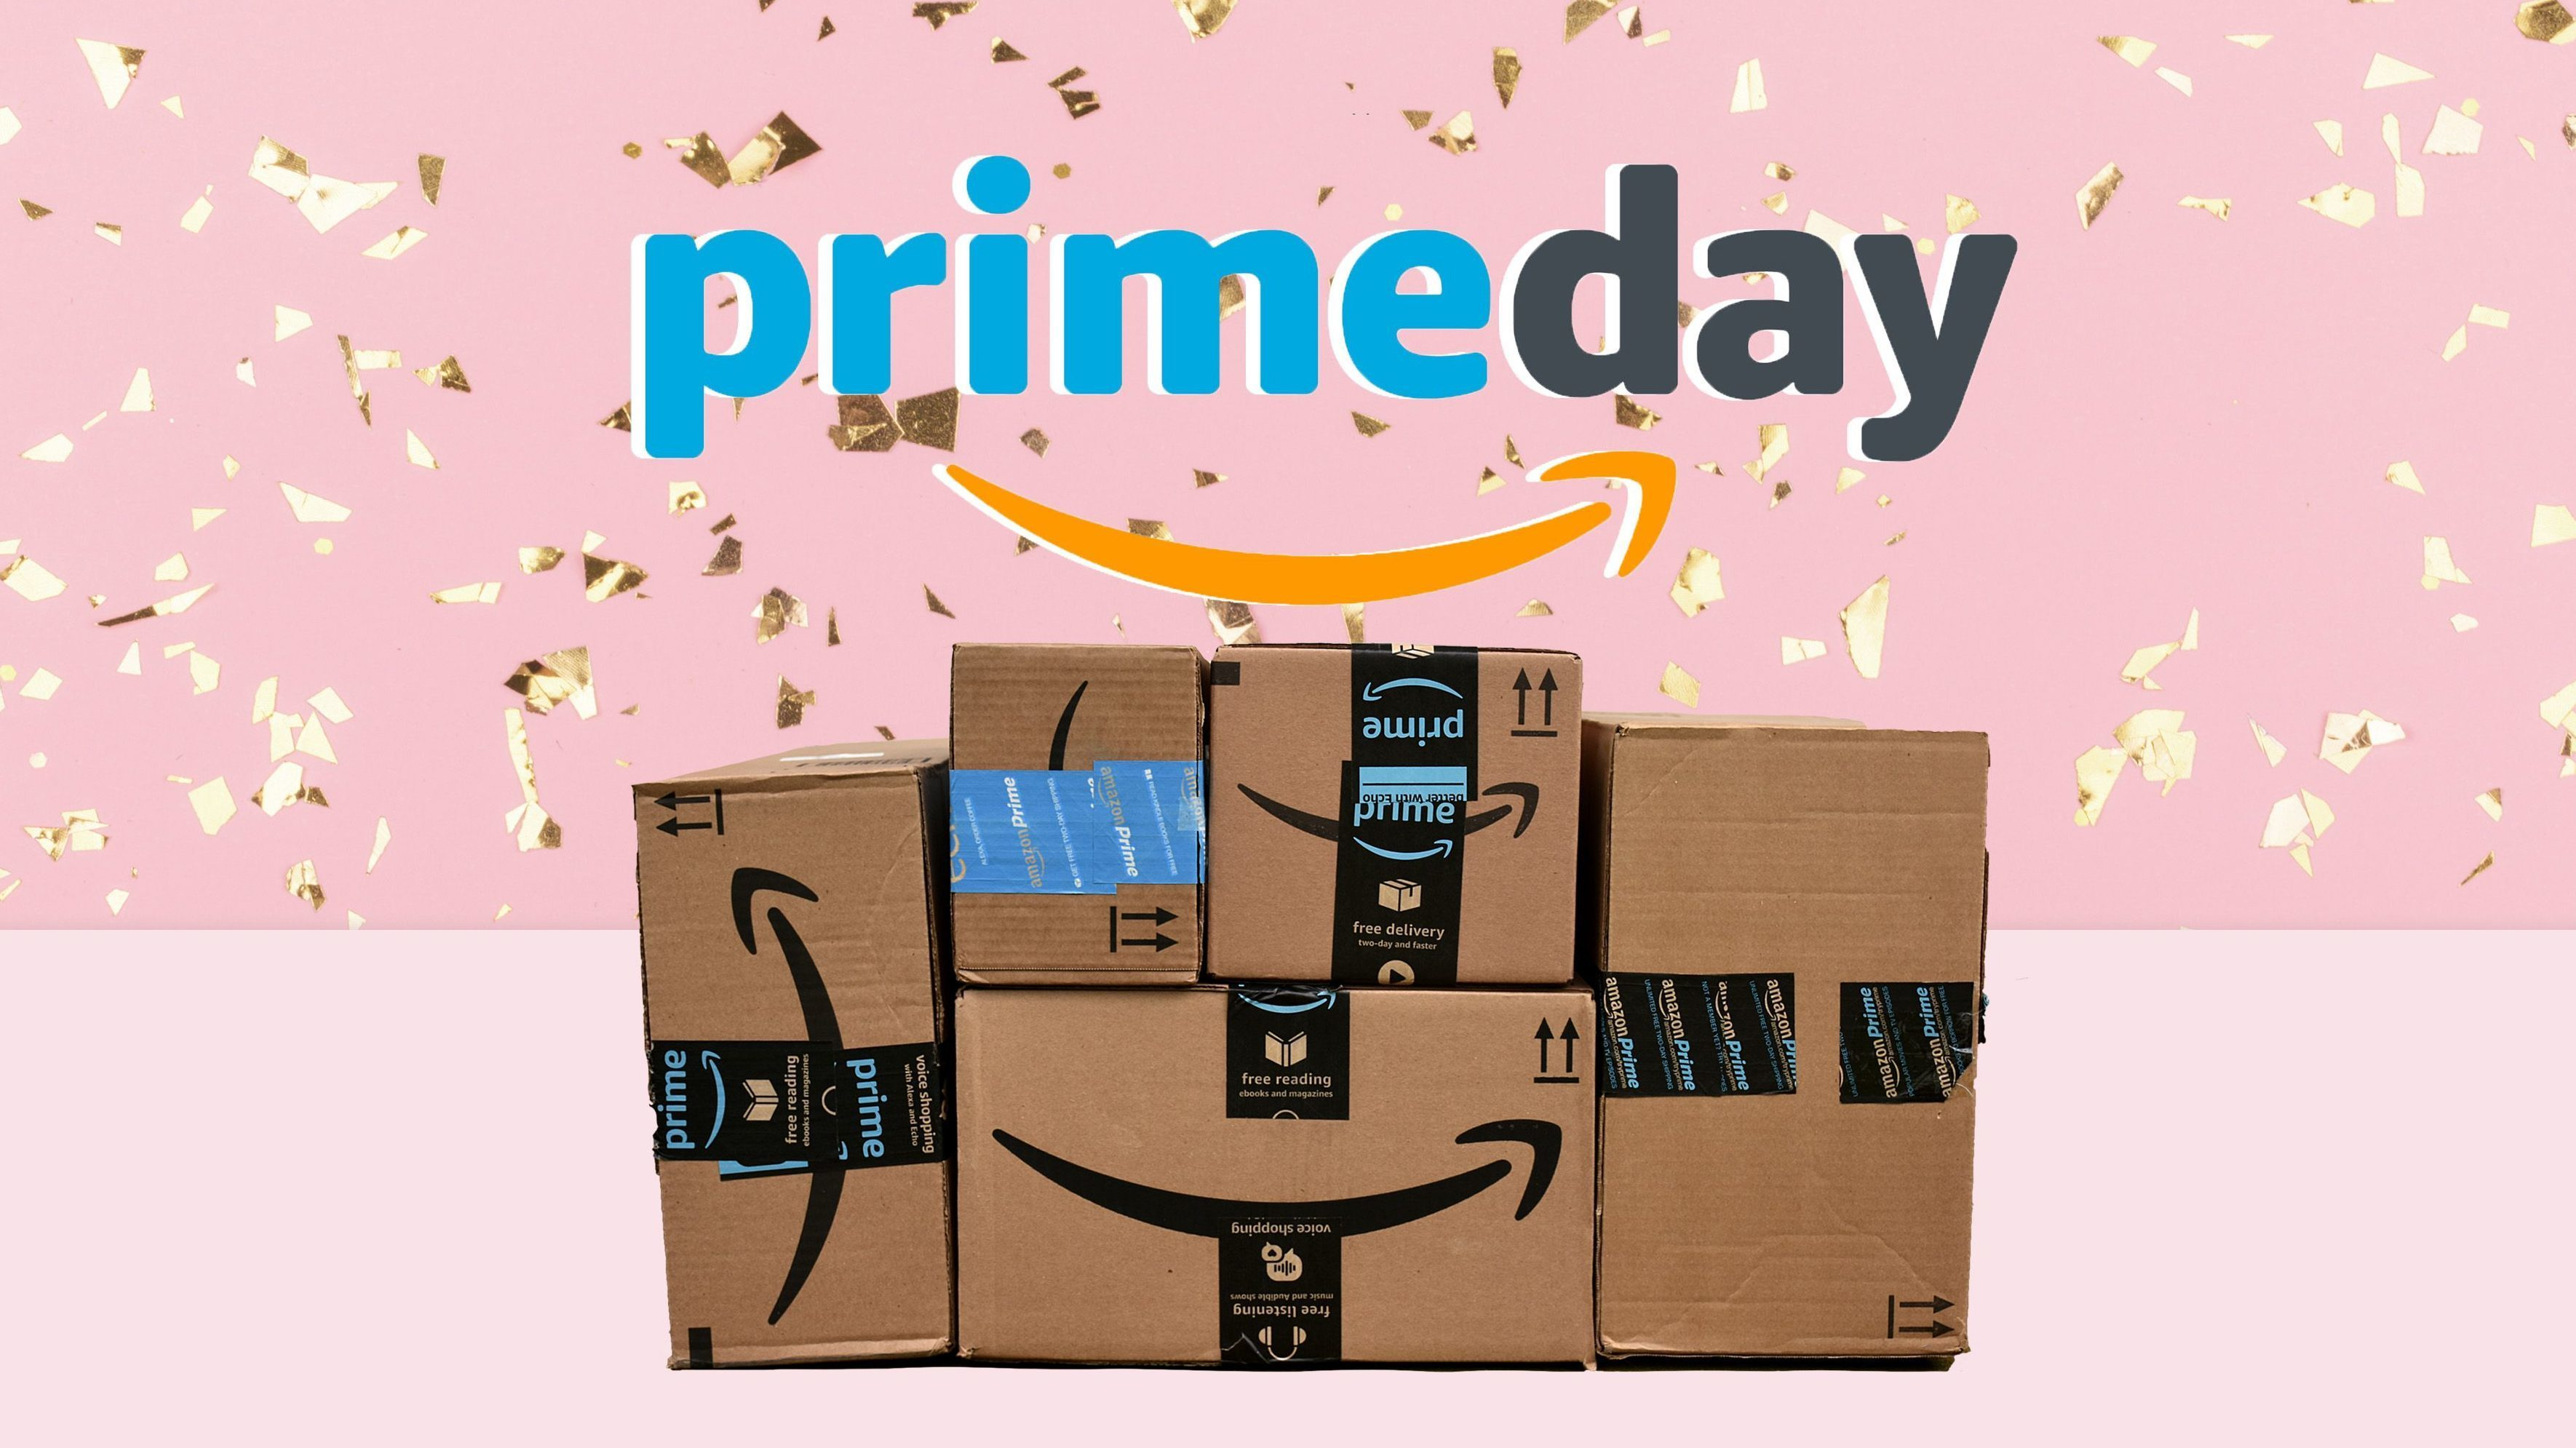 Amazon Prime day sale starting 15th july for 48 ,hours